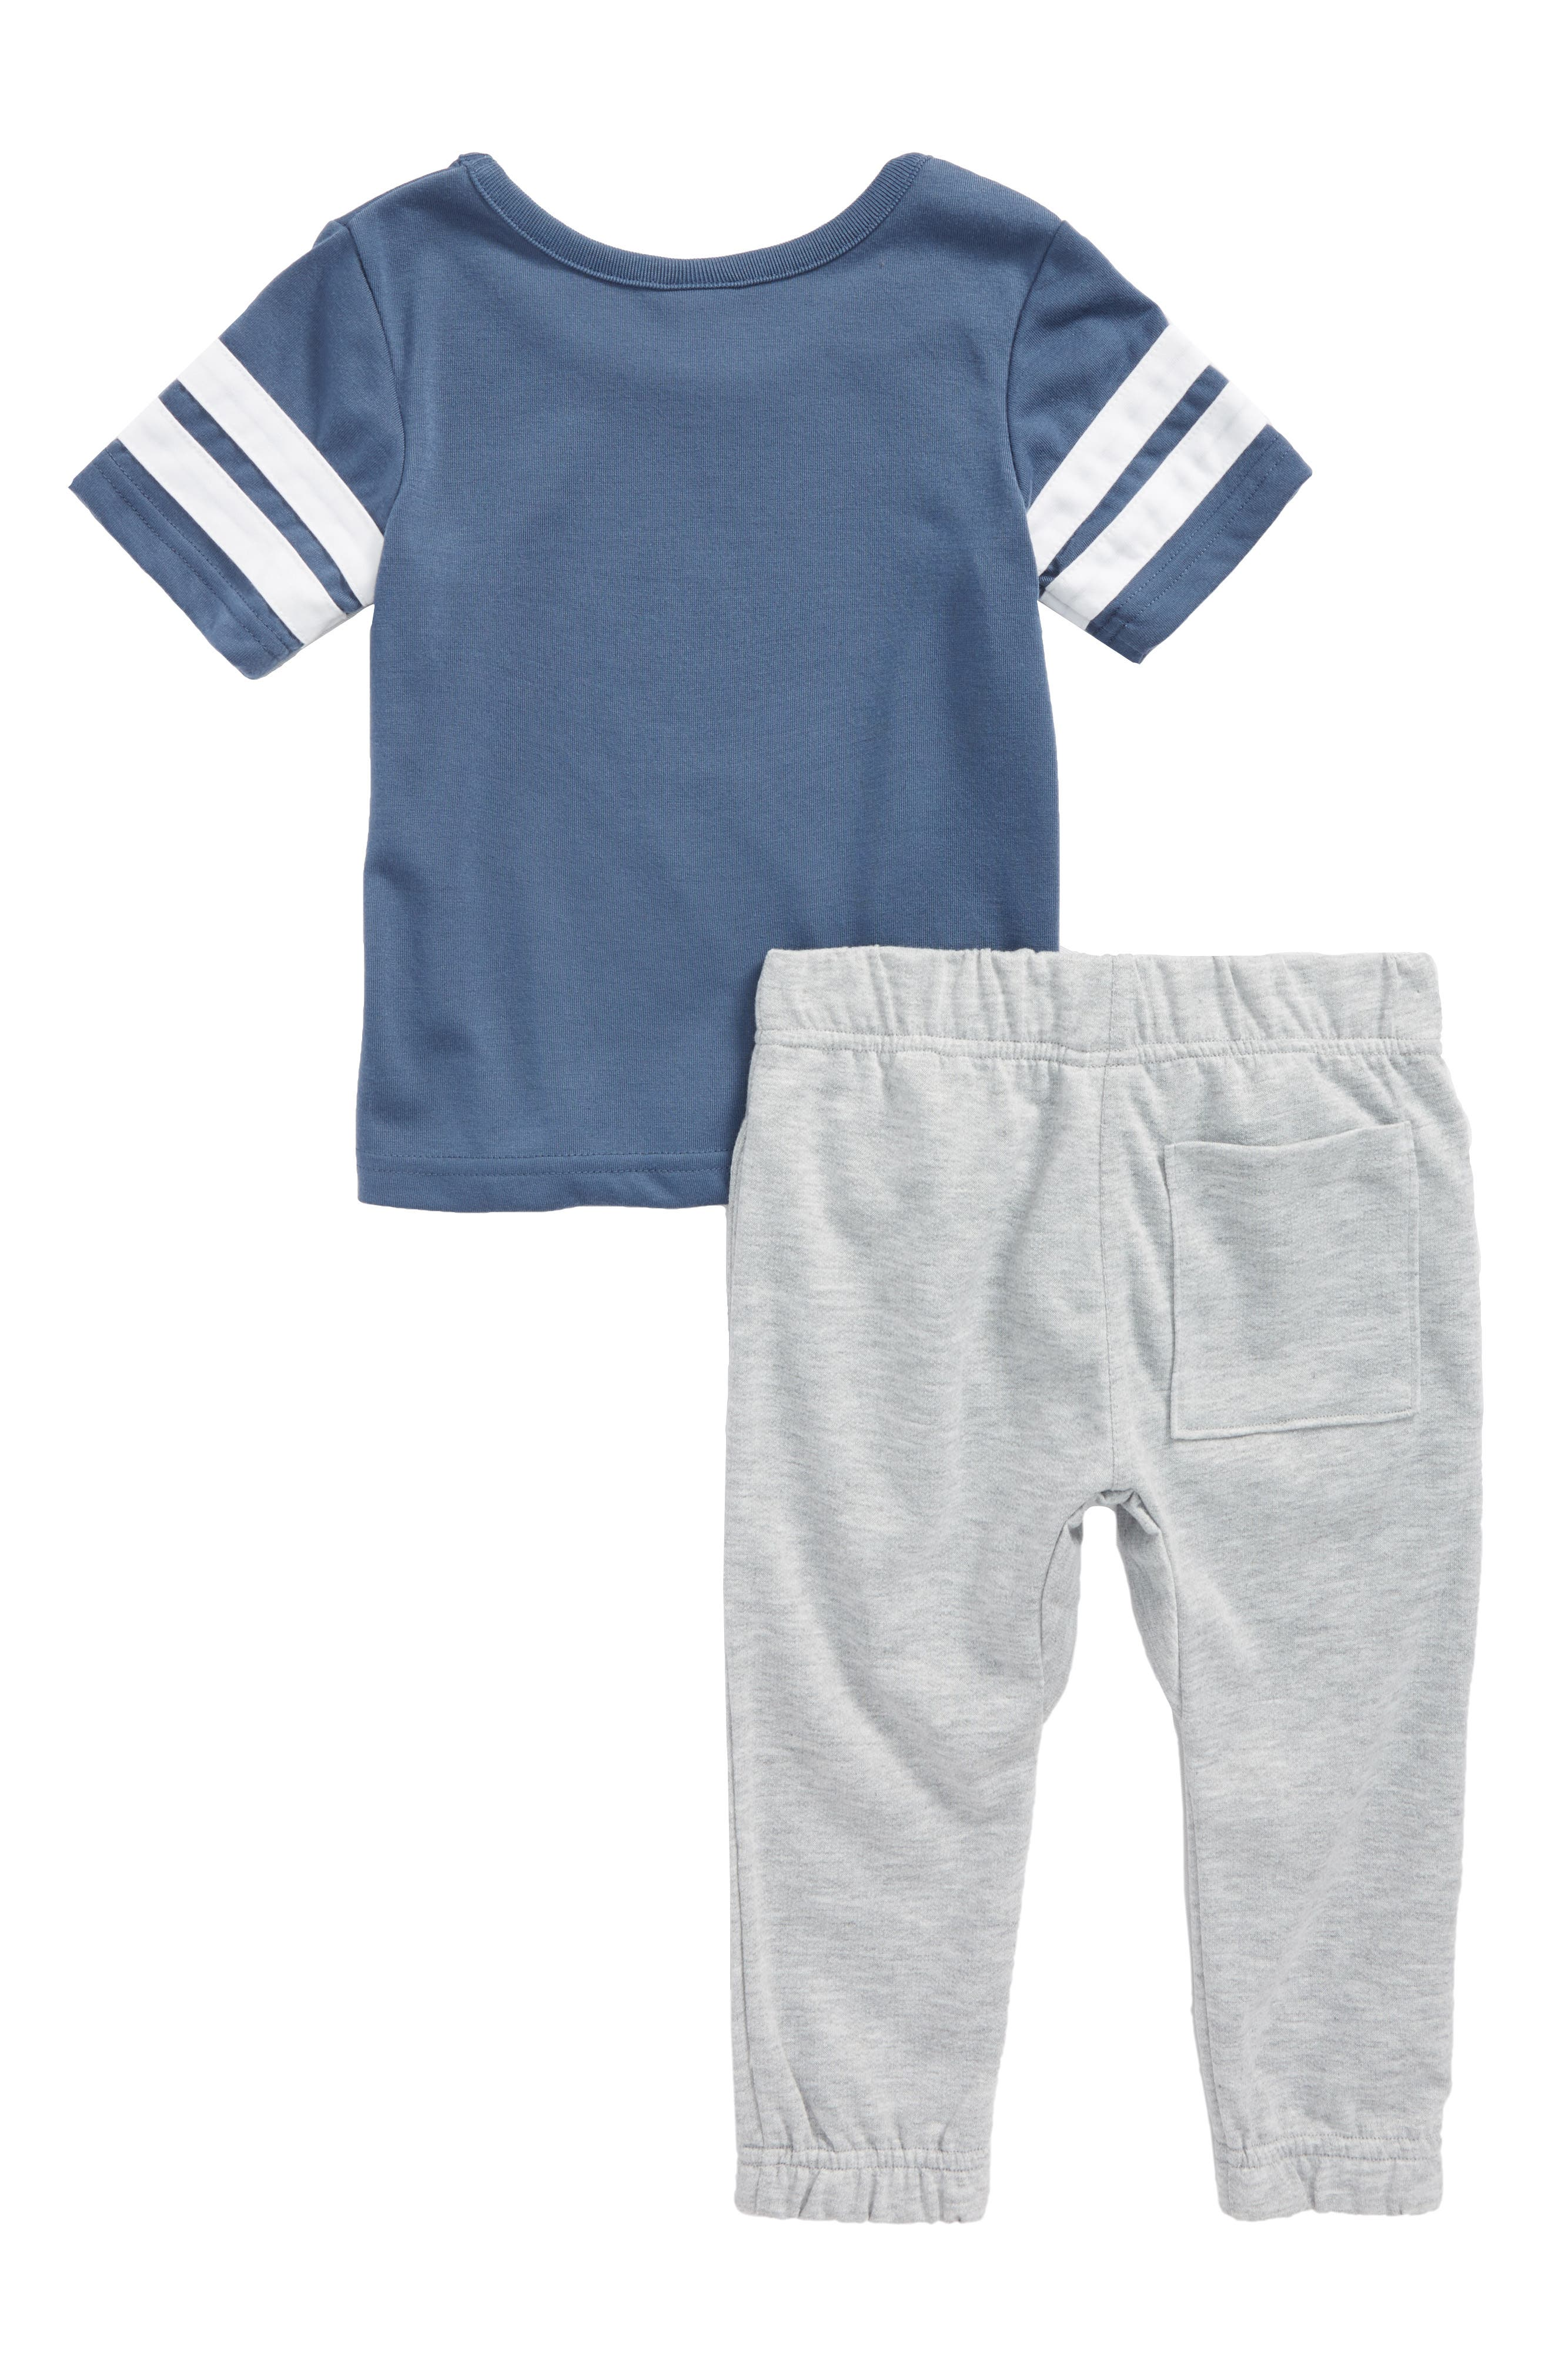 Yum Yum Two-Piece Pajamas,                             Alternate thumbnail 2, color,                             420